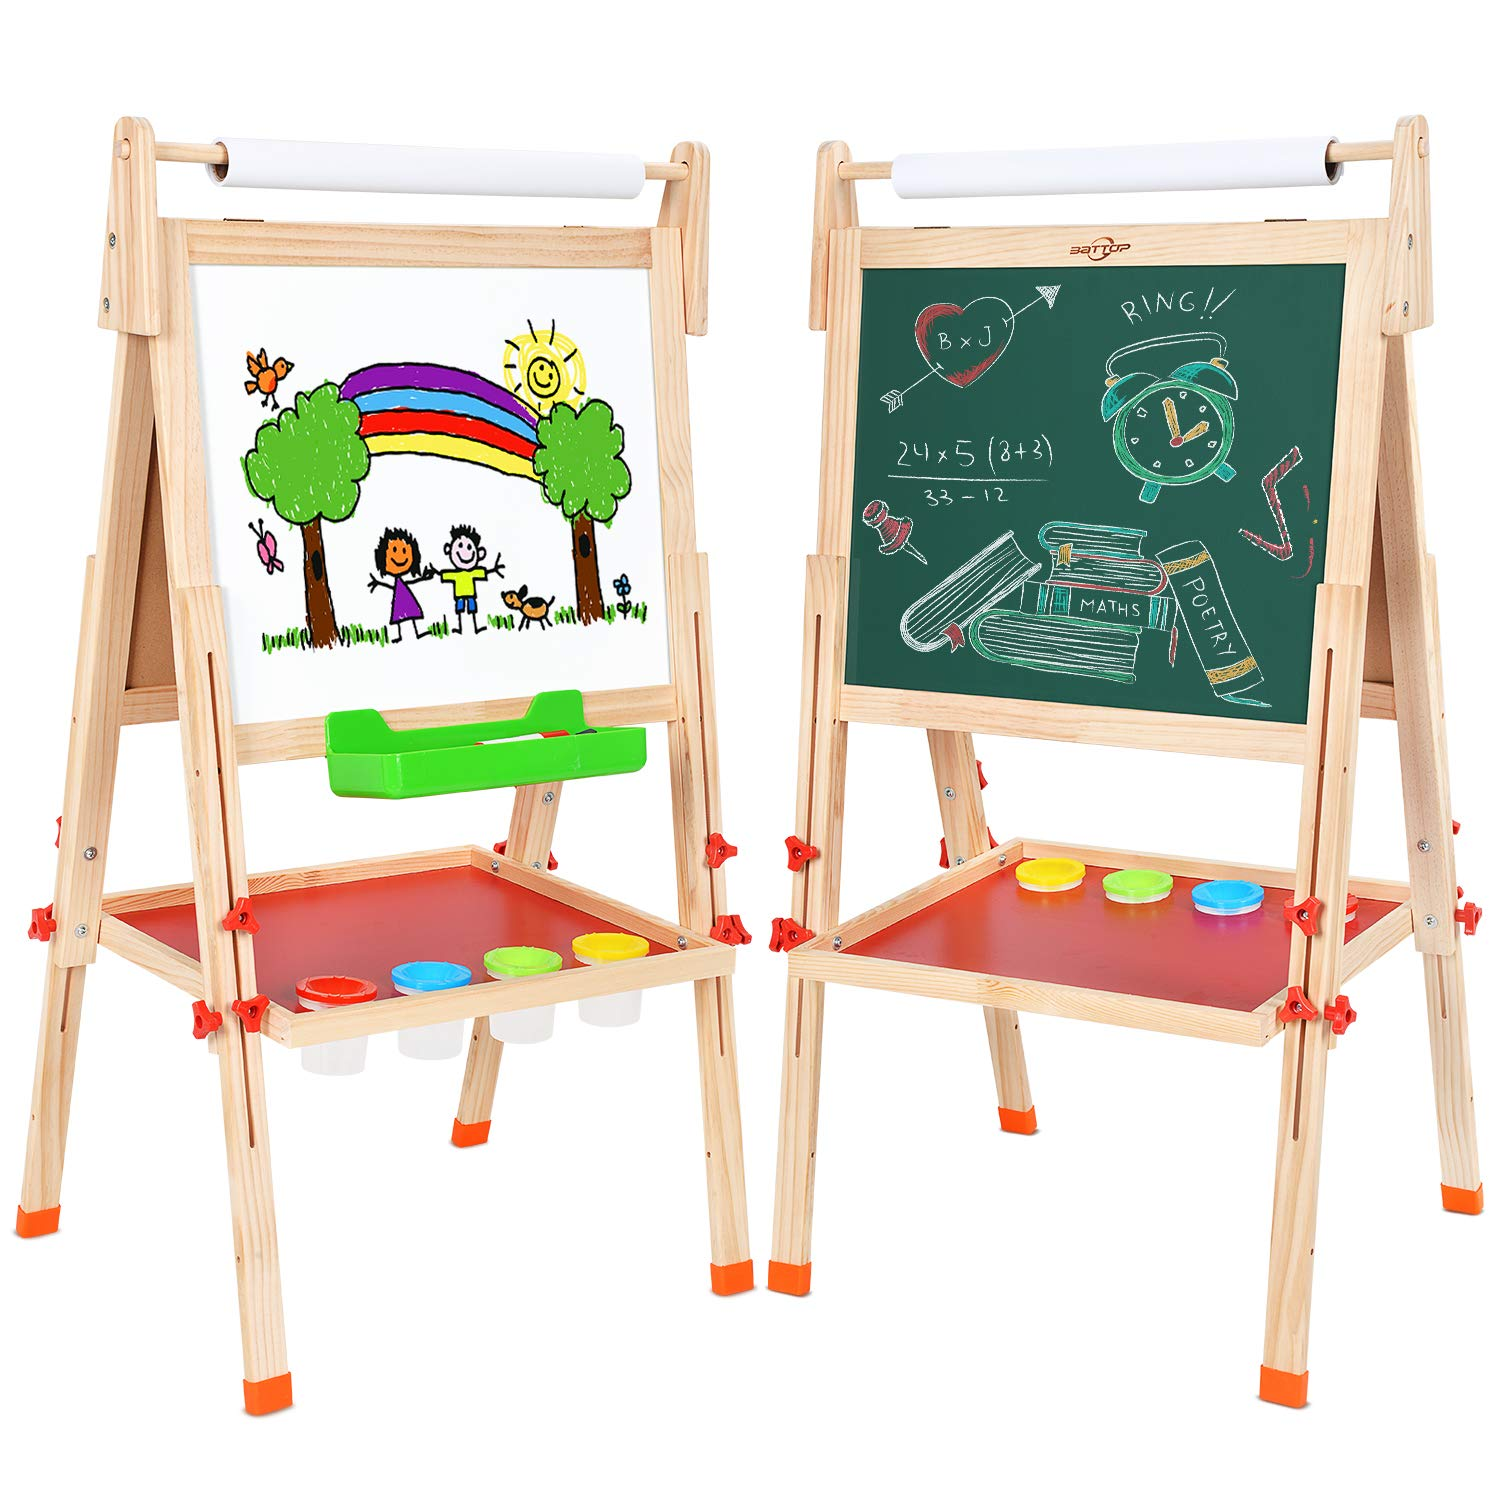 Extra Accessory Set Included 3 in 1 BATTOP Double Sided Adjustable Kids Easel Drawing Board with Magnetic Alphabet Numbers